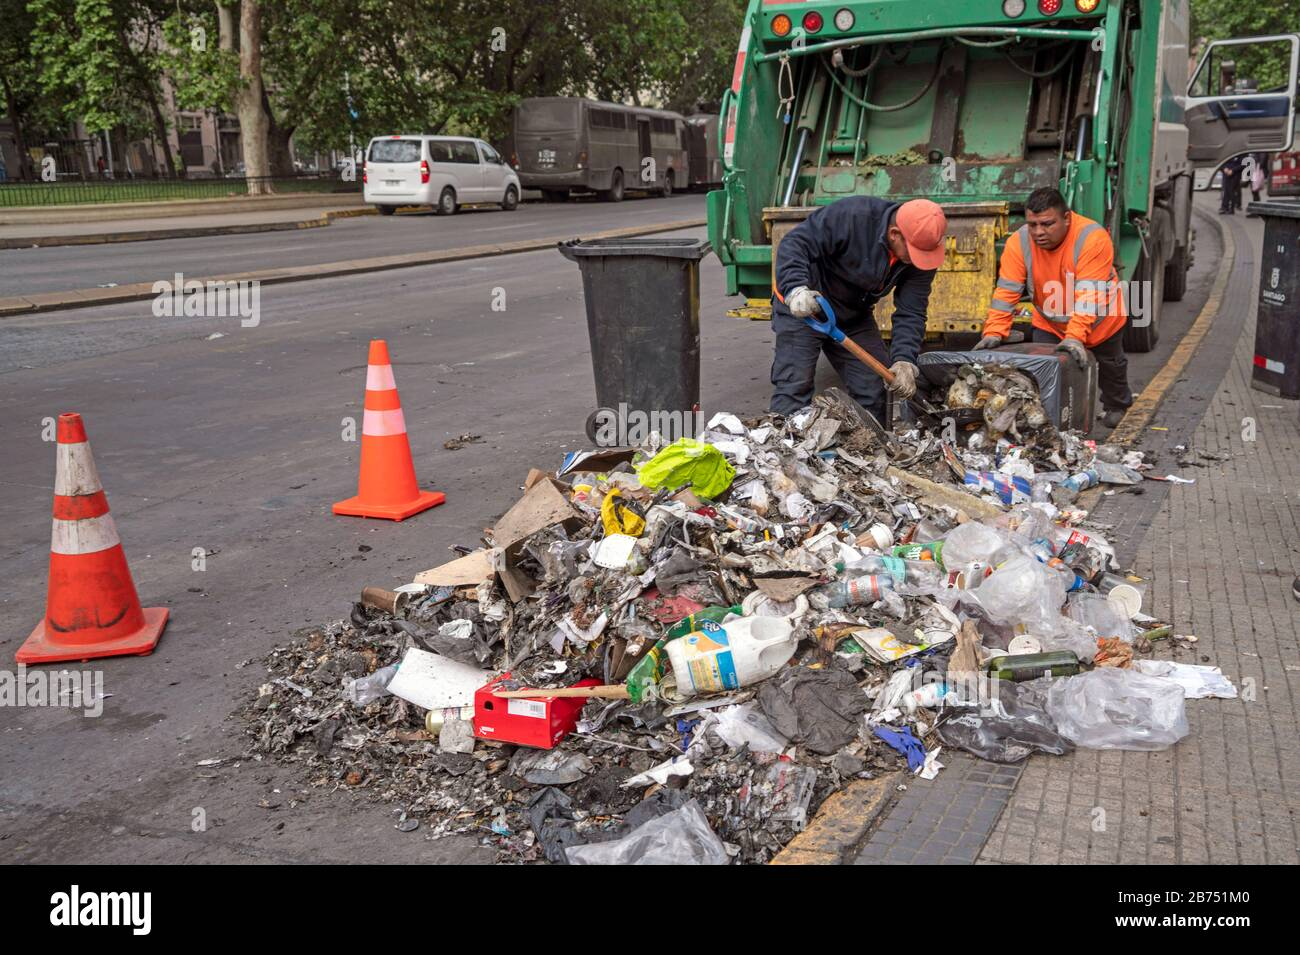 Chile, Santiago, 19.10.2019. Santiago in state of emergency on 19.10.2019. Clearance of roadblocks. The violent protests had started after a fare increase of the subway in Santiago. Chile's president Sebastian Piñera then declared a state of emergency on Friday evening. After renewed arson attacks on subway stations, a curfew was imposed in the Chilean capital on Saturday. [automated translation] Stock Photo